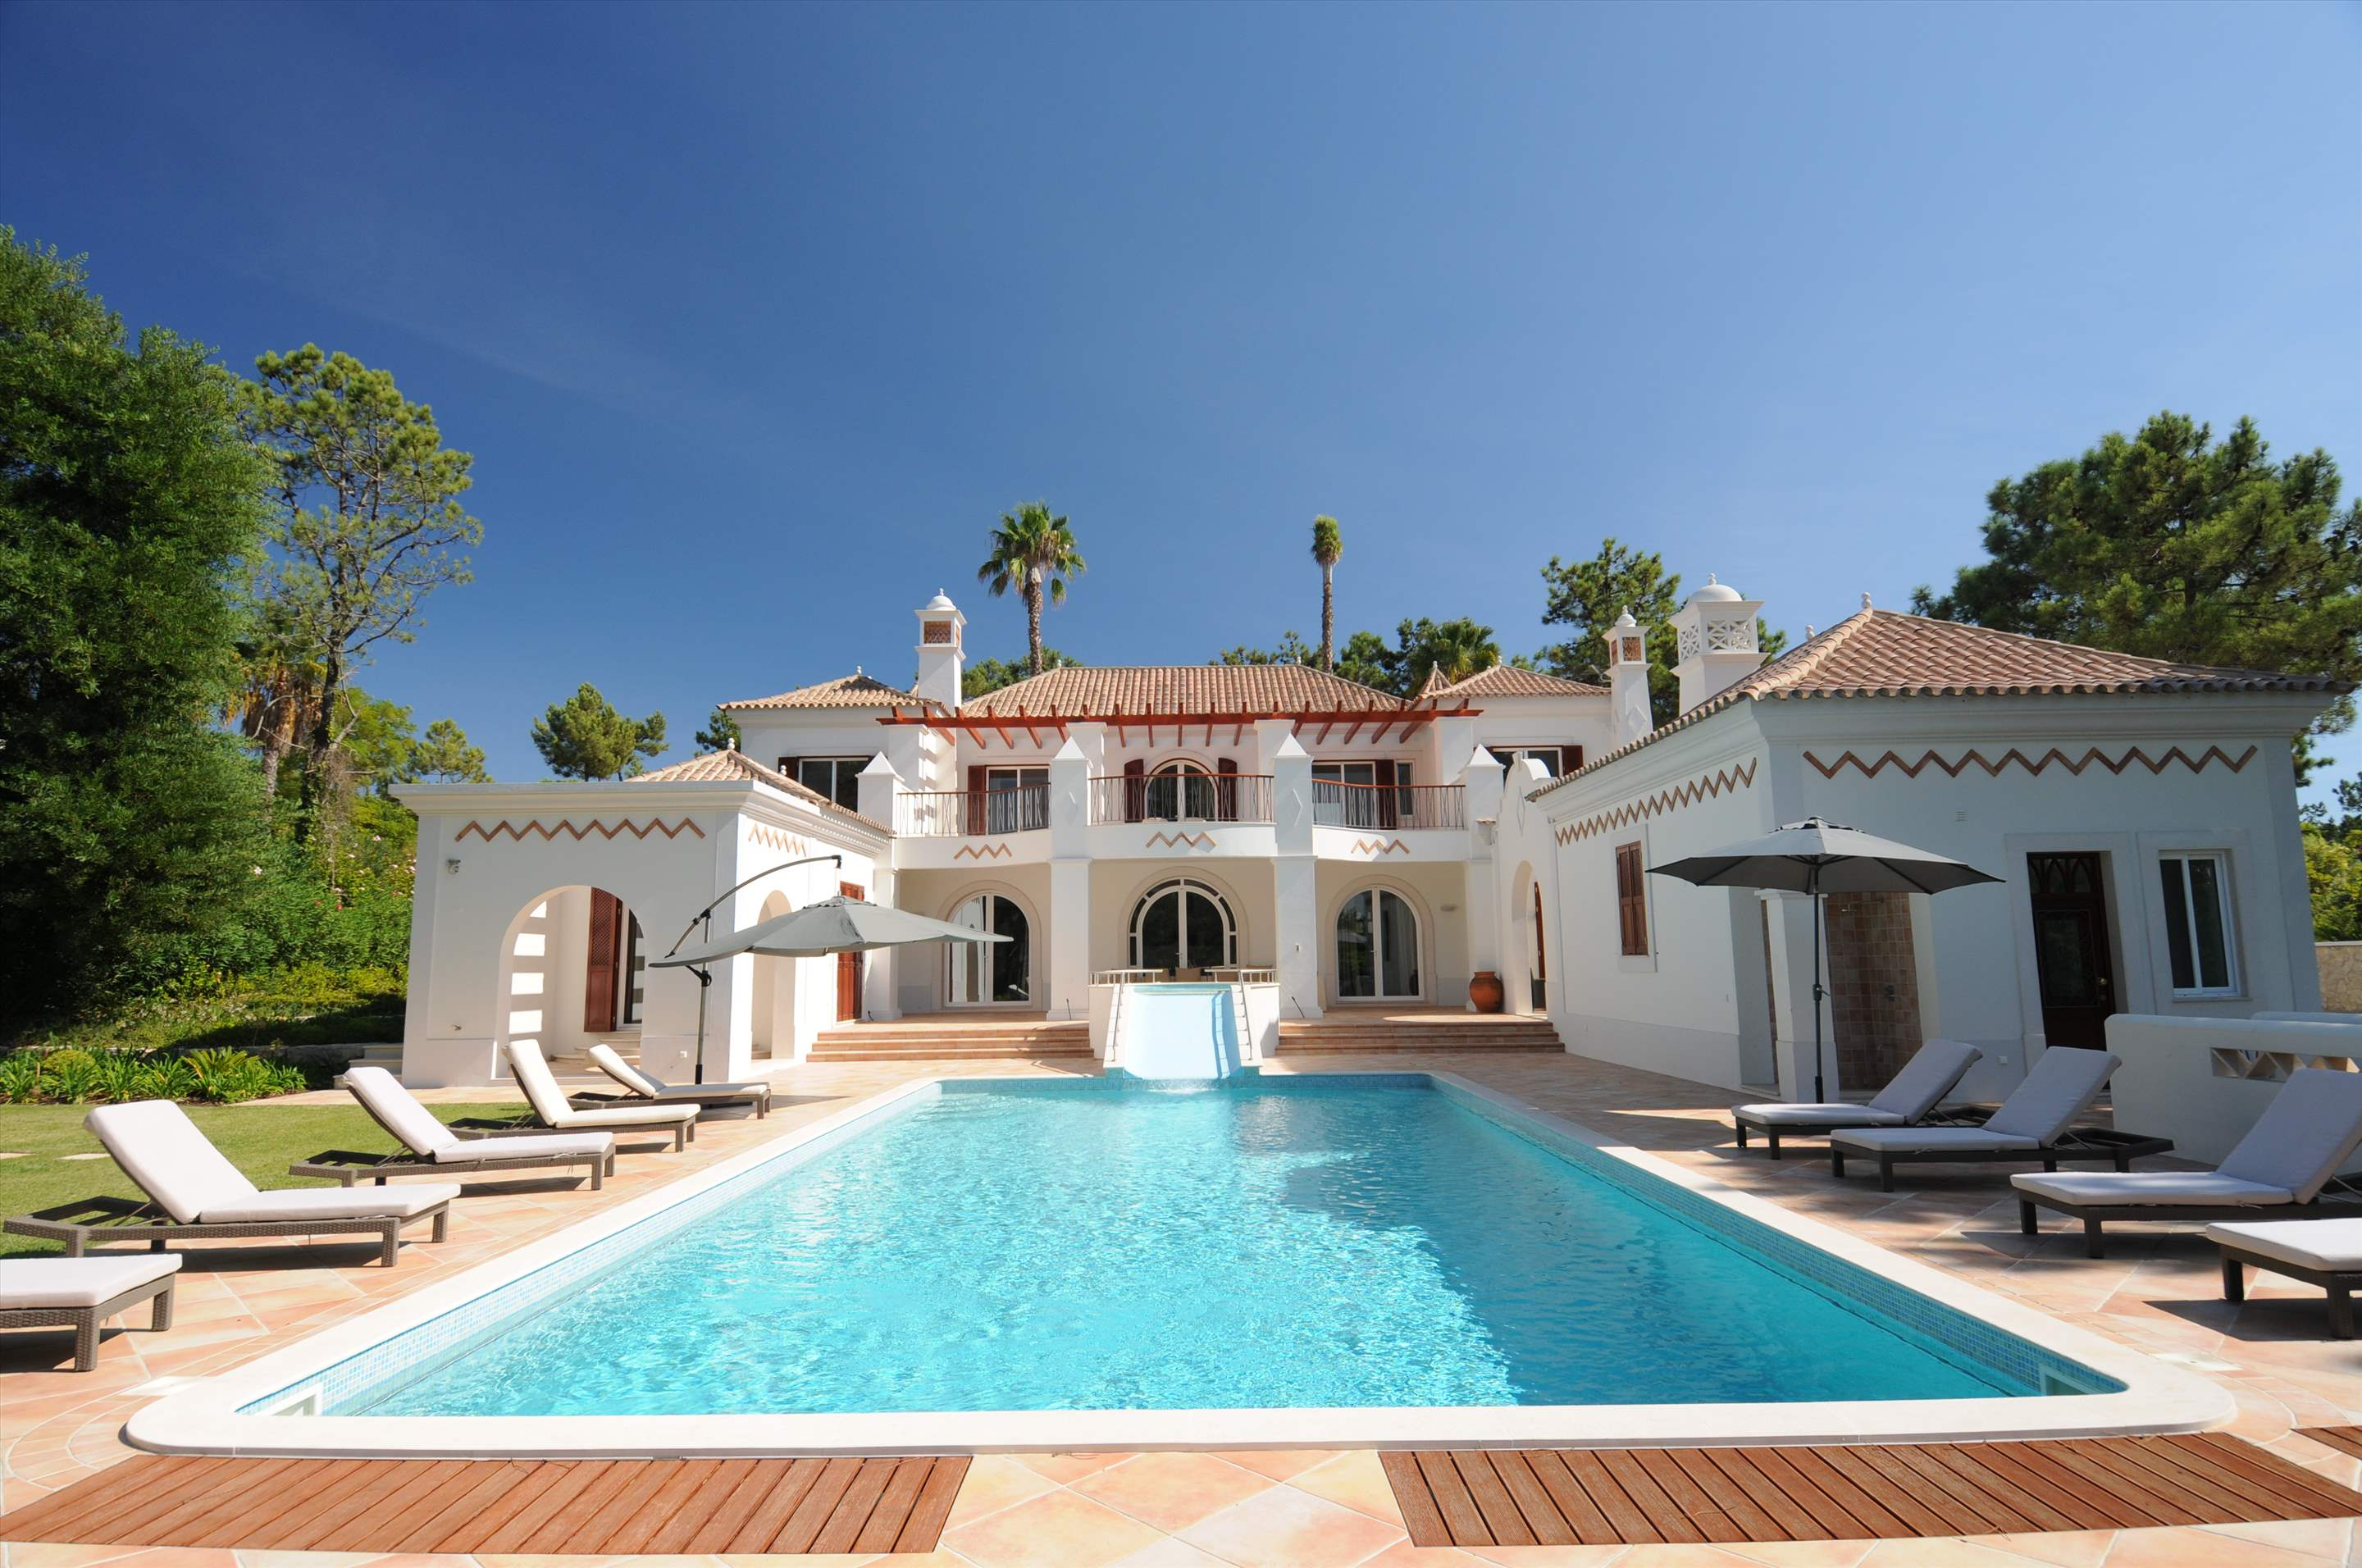 Villa Lantana 2, Main house & Annexe, 6 bedrooms, 6 bedroom villa in Quinta do Lago, Algarve Photo #1